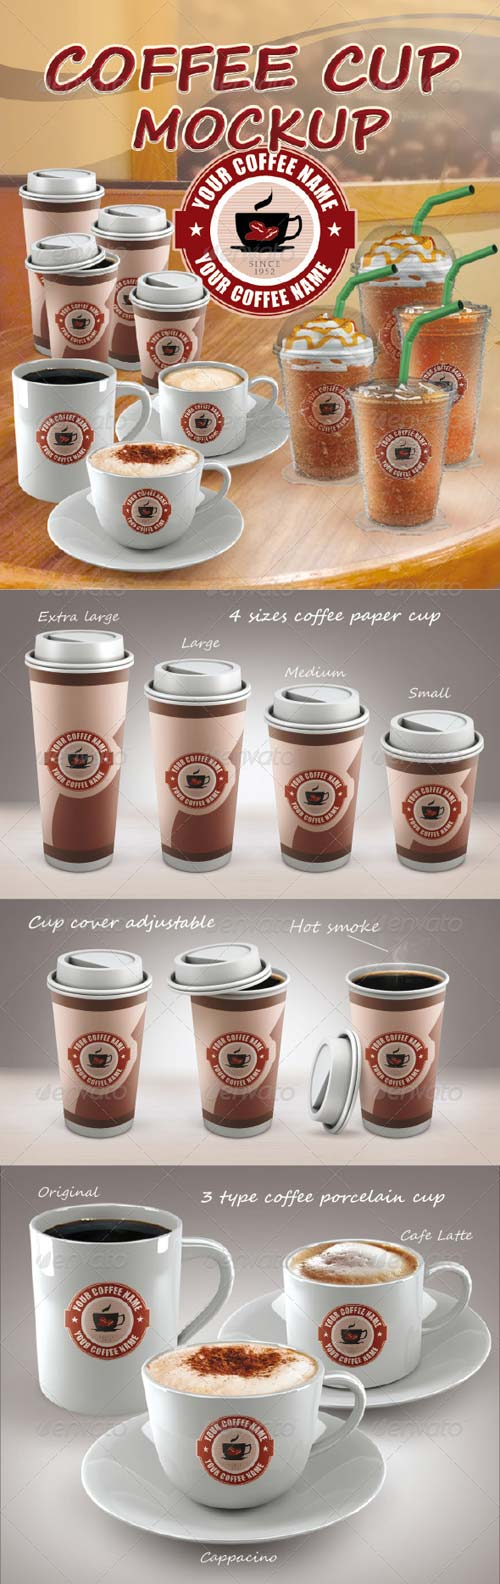 GraphicRiver COFFEE CUP MOCKUP